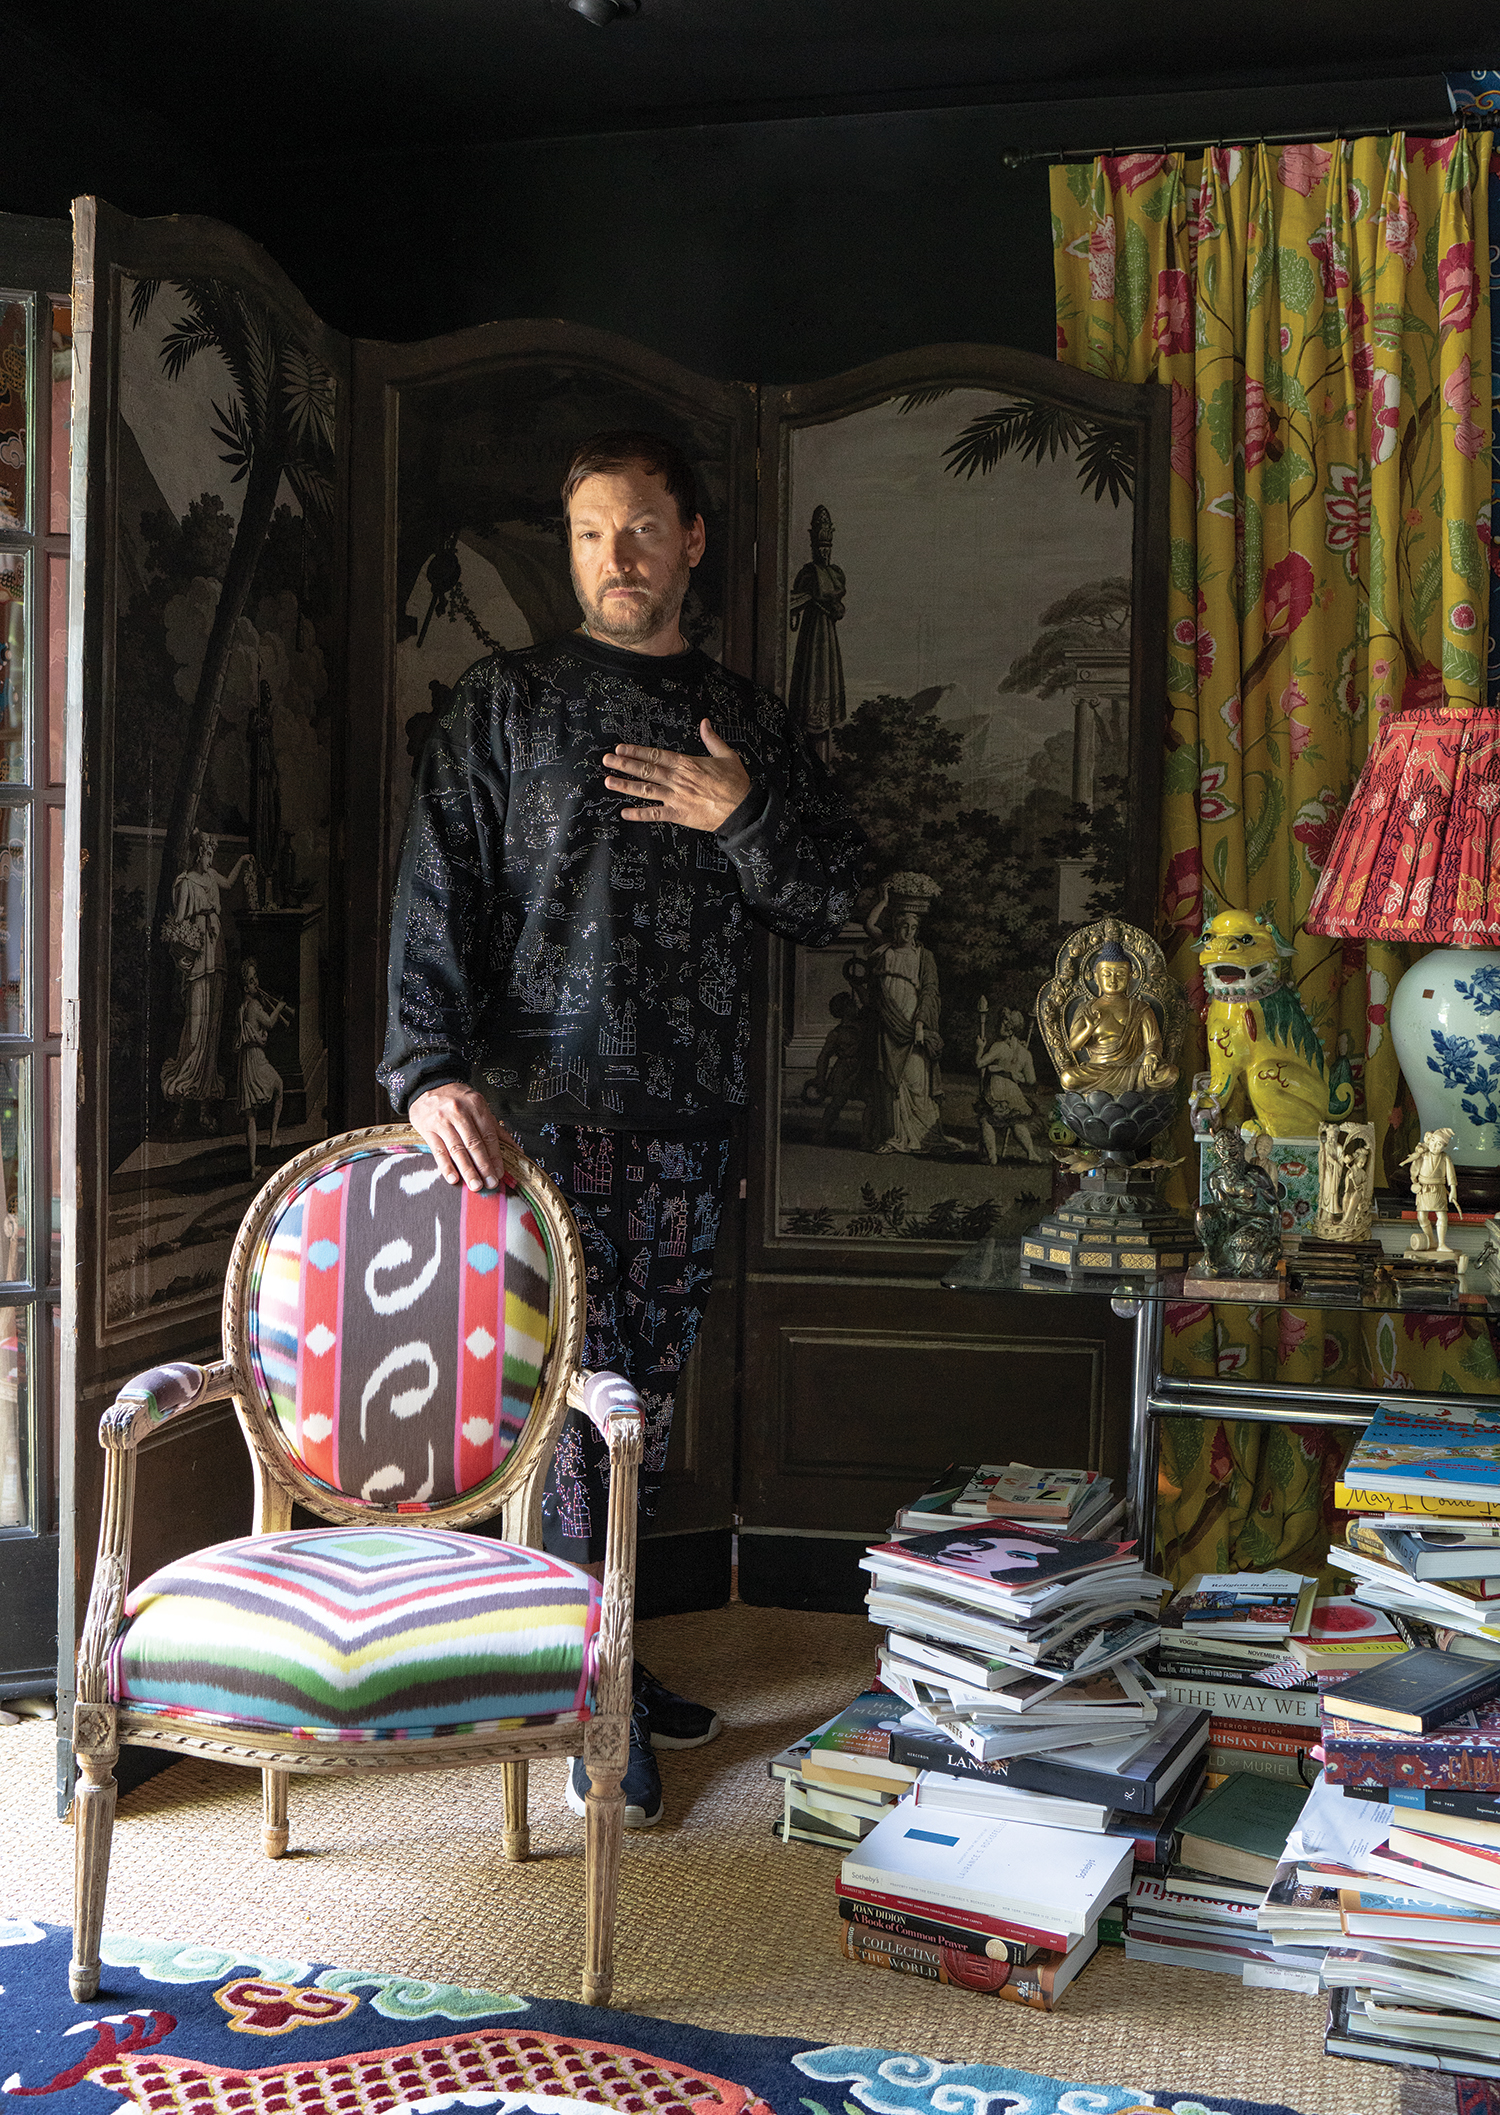 At Home With Johnson Hartig of Libertine (It's a Magical Place!)